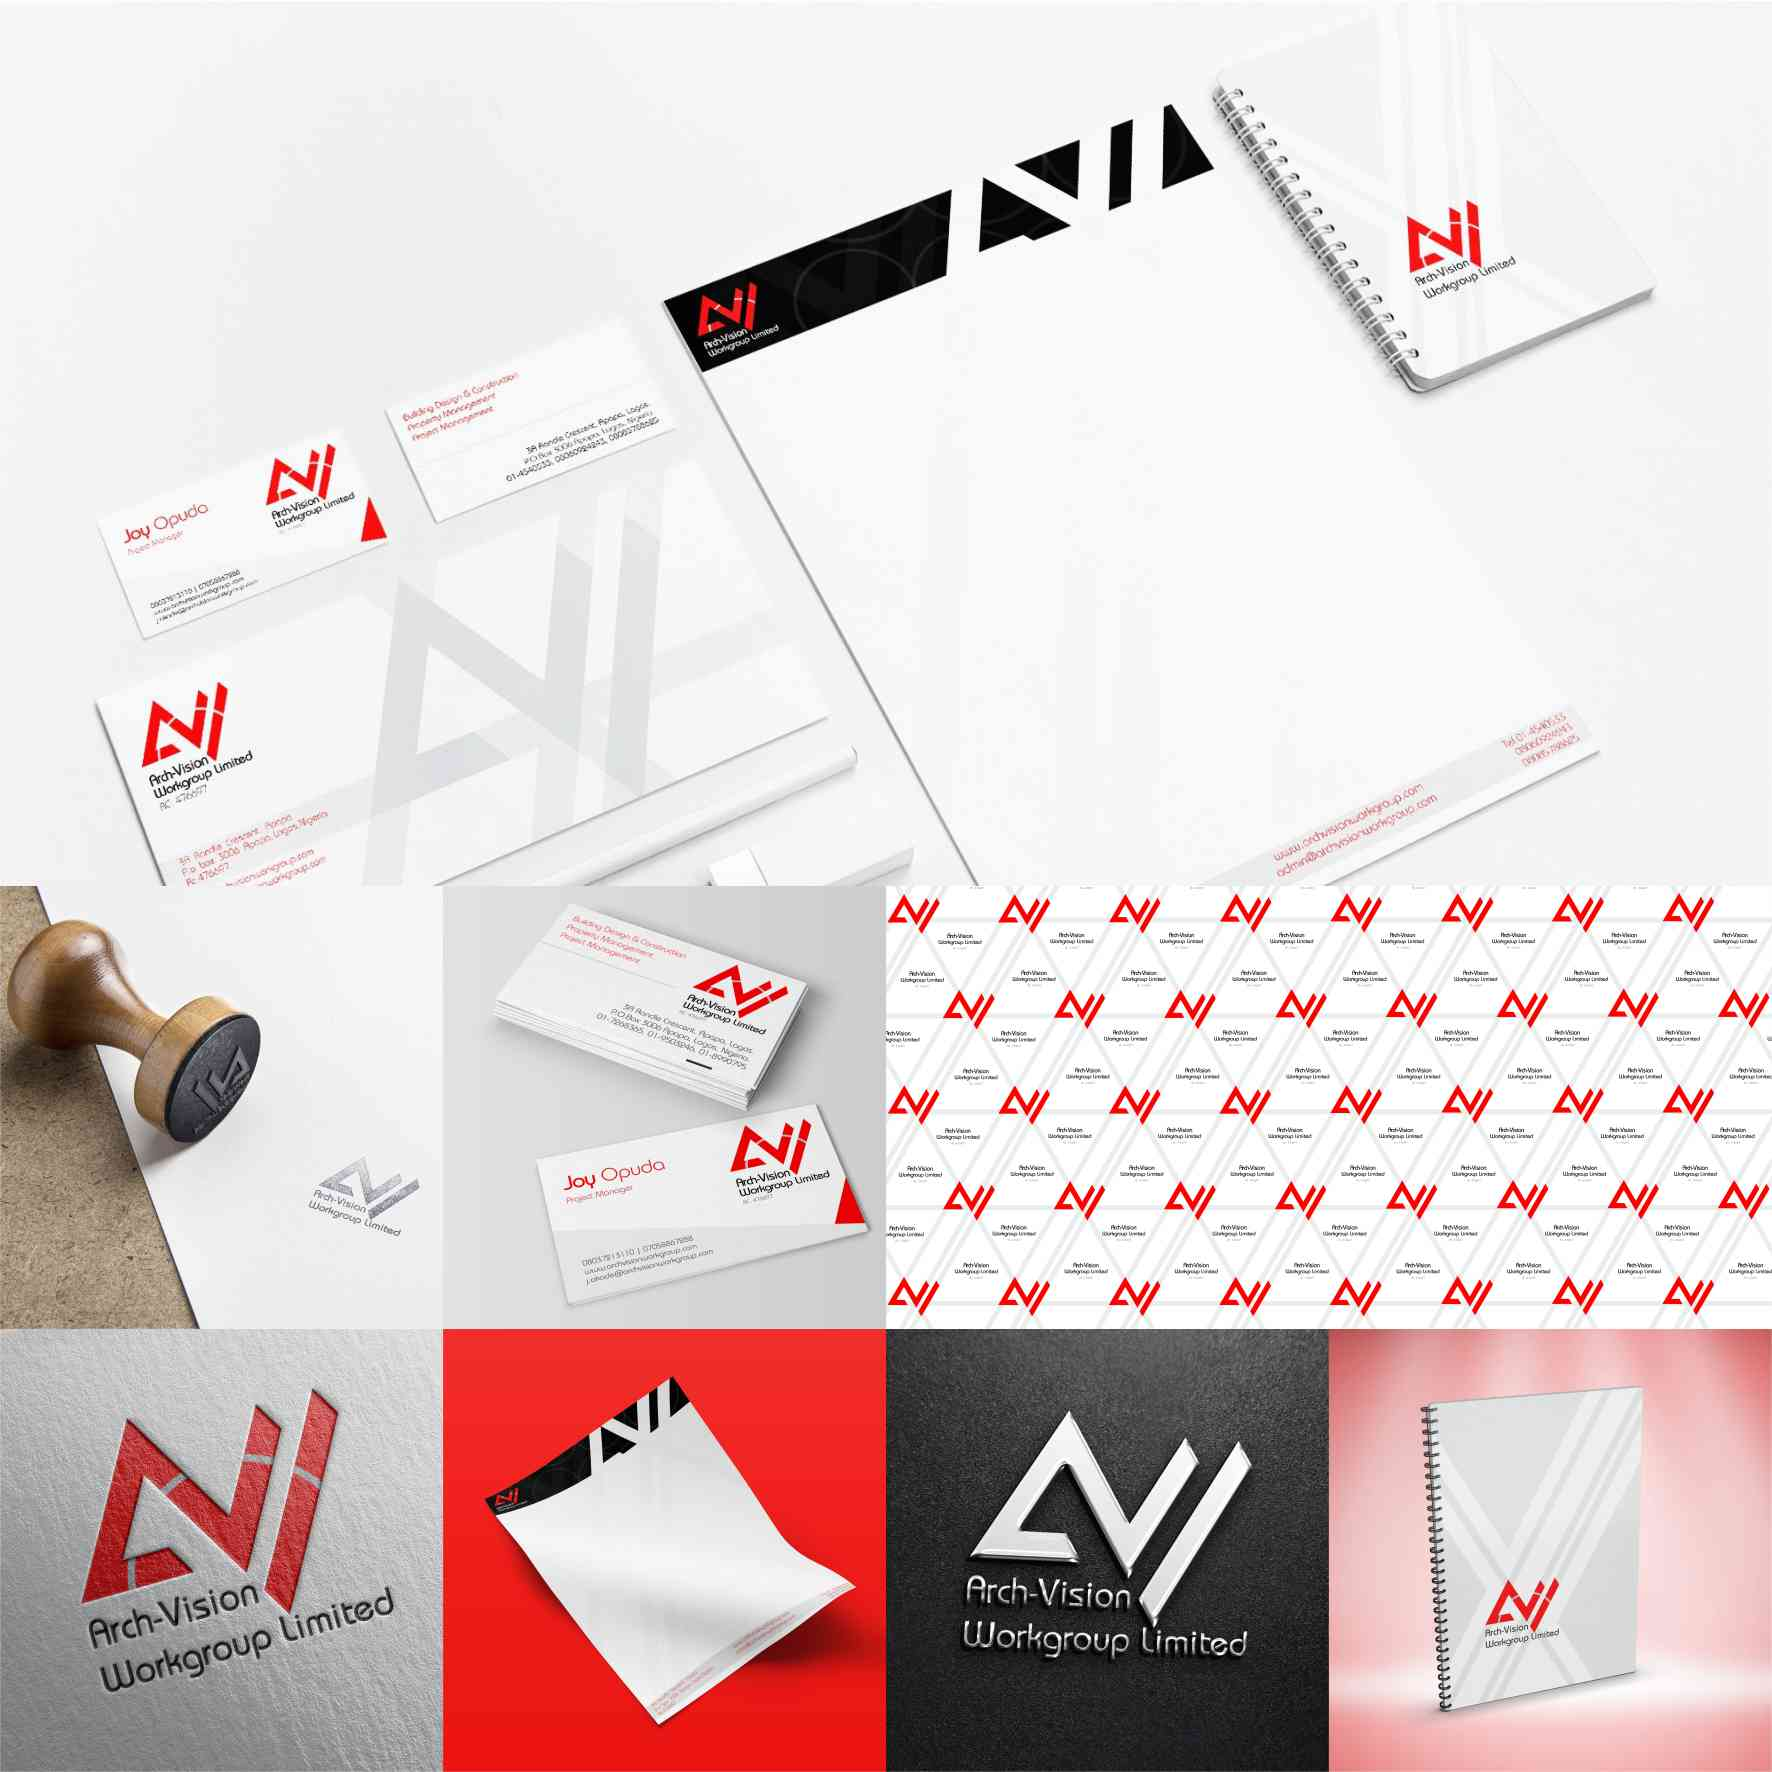 Arch-Vision Workgroup graphics design branding by David Rotimi